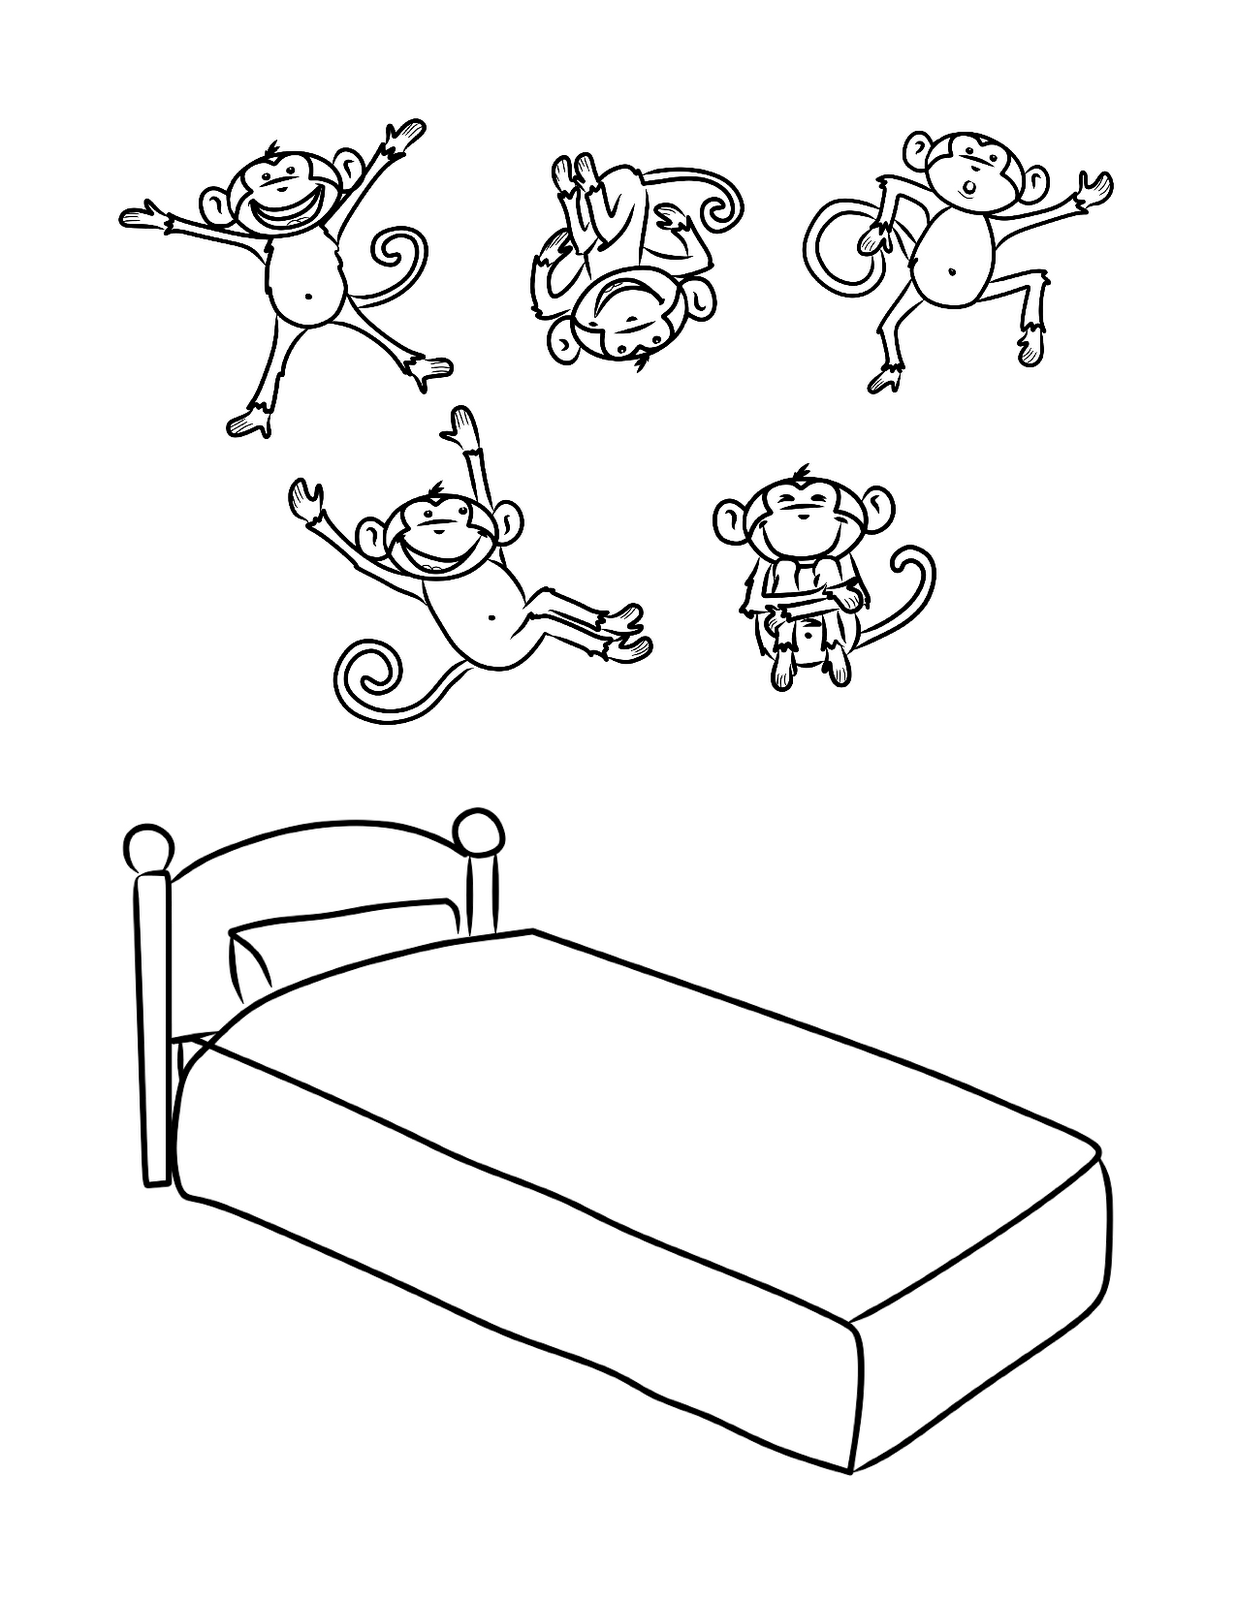 beds coloring pages - photo#33